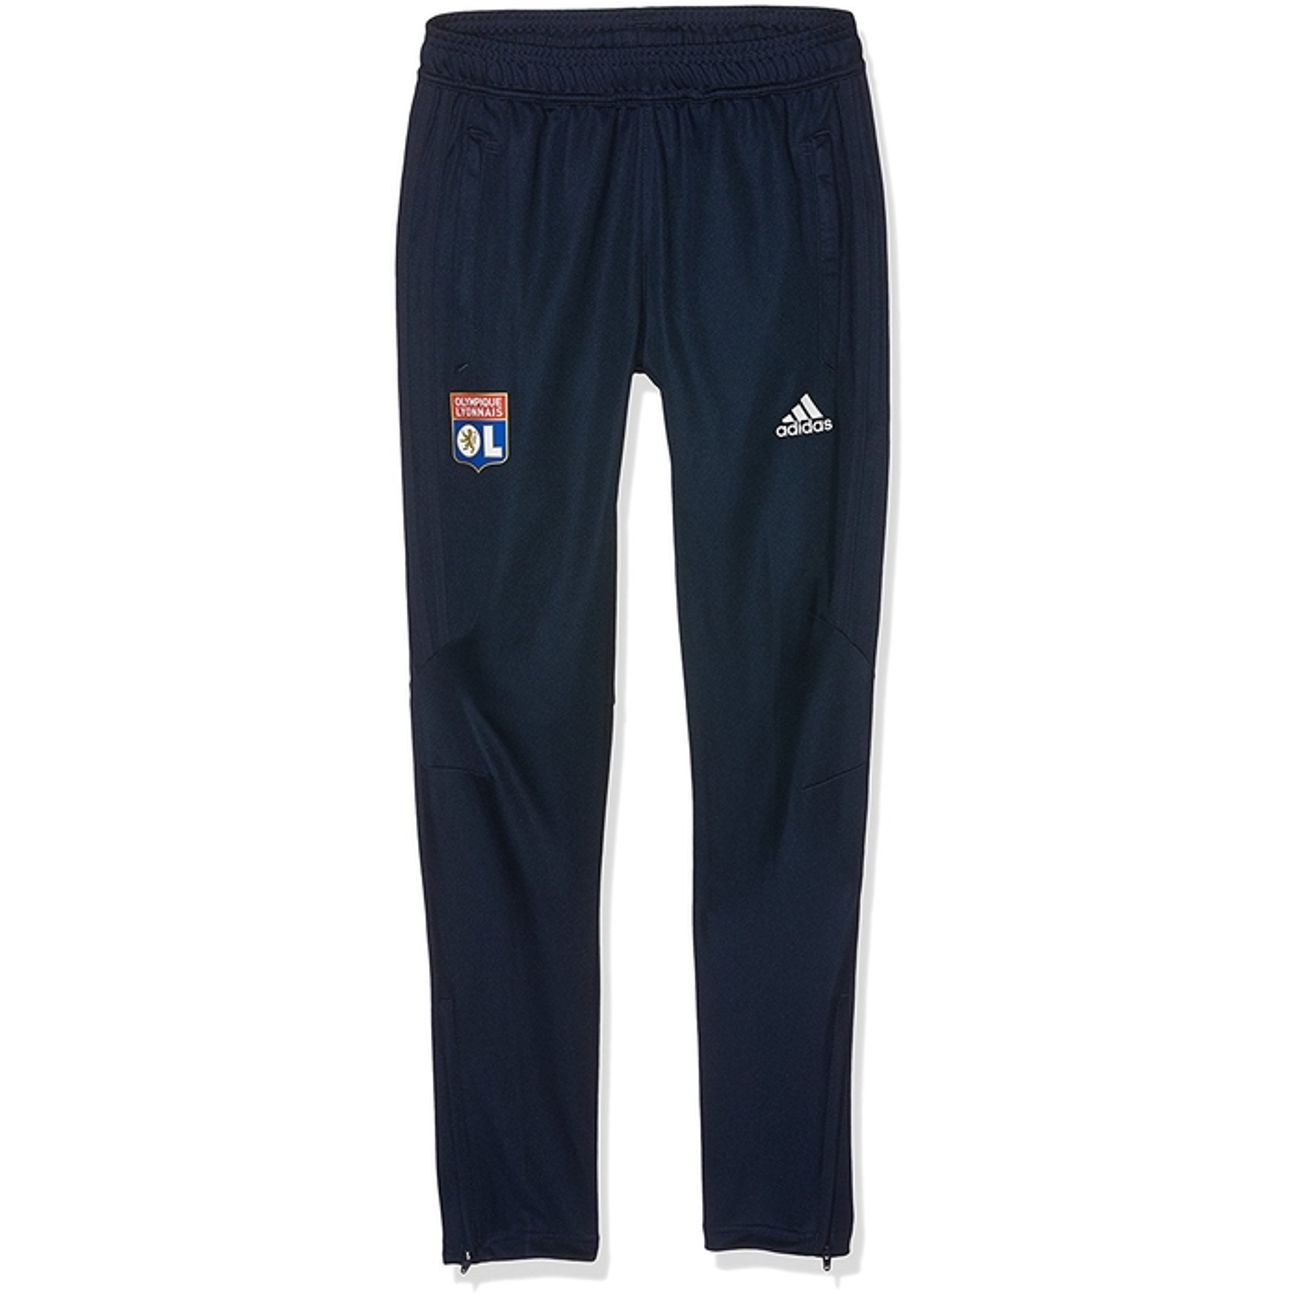 PANTALON FOOTBALL   ADIDAS OL TECH PANT JR 17